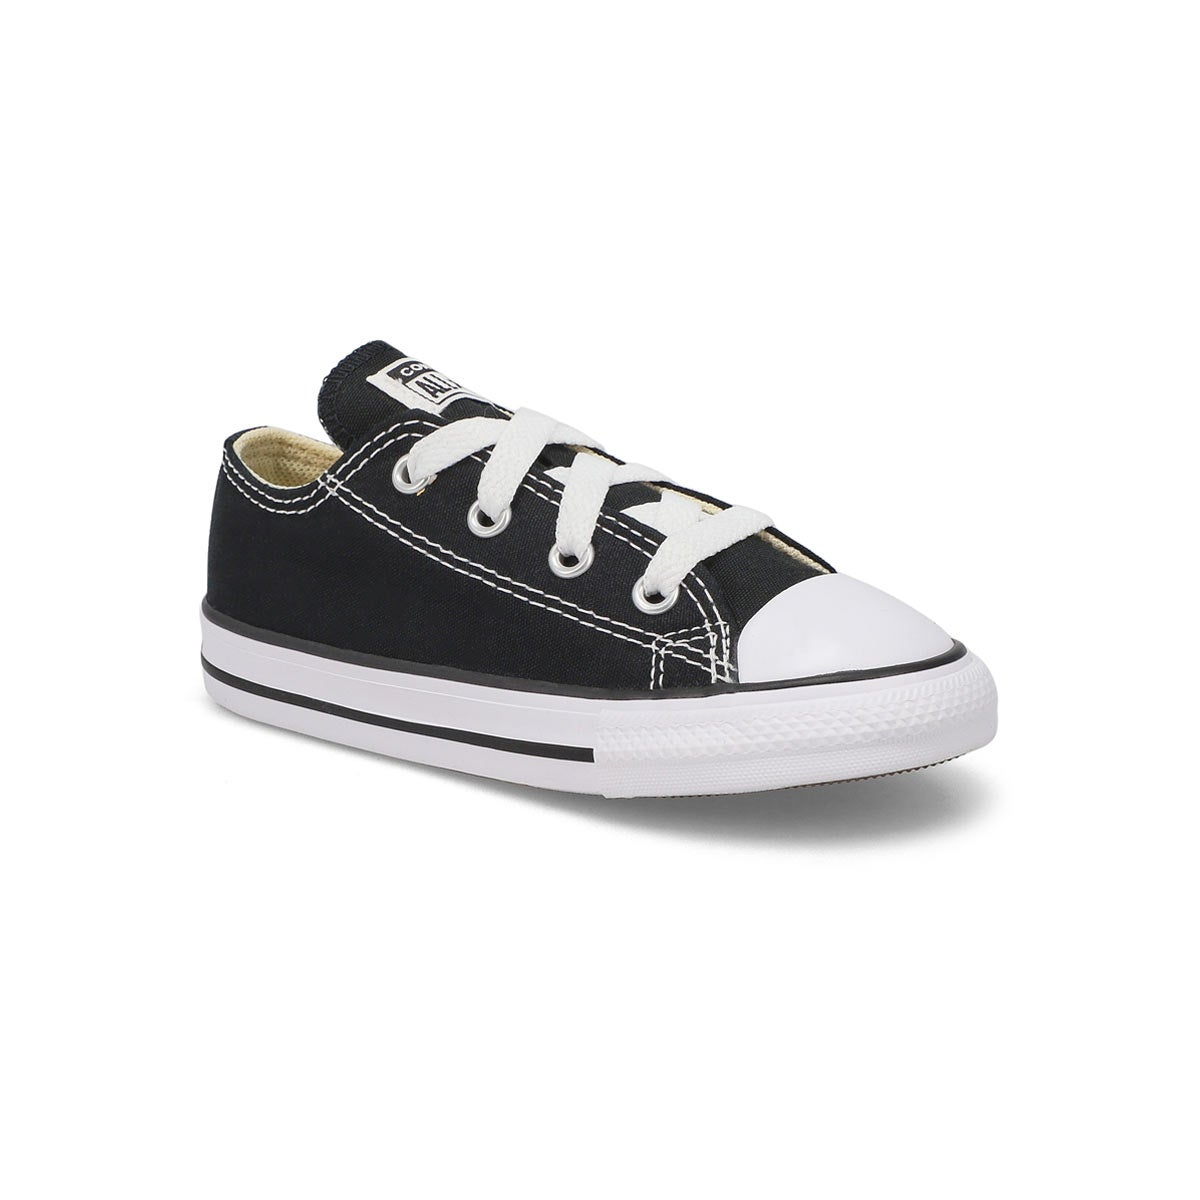 Infants' CHUCK TAYLOR ALL STAR black sneakers